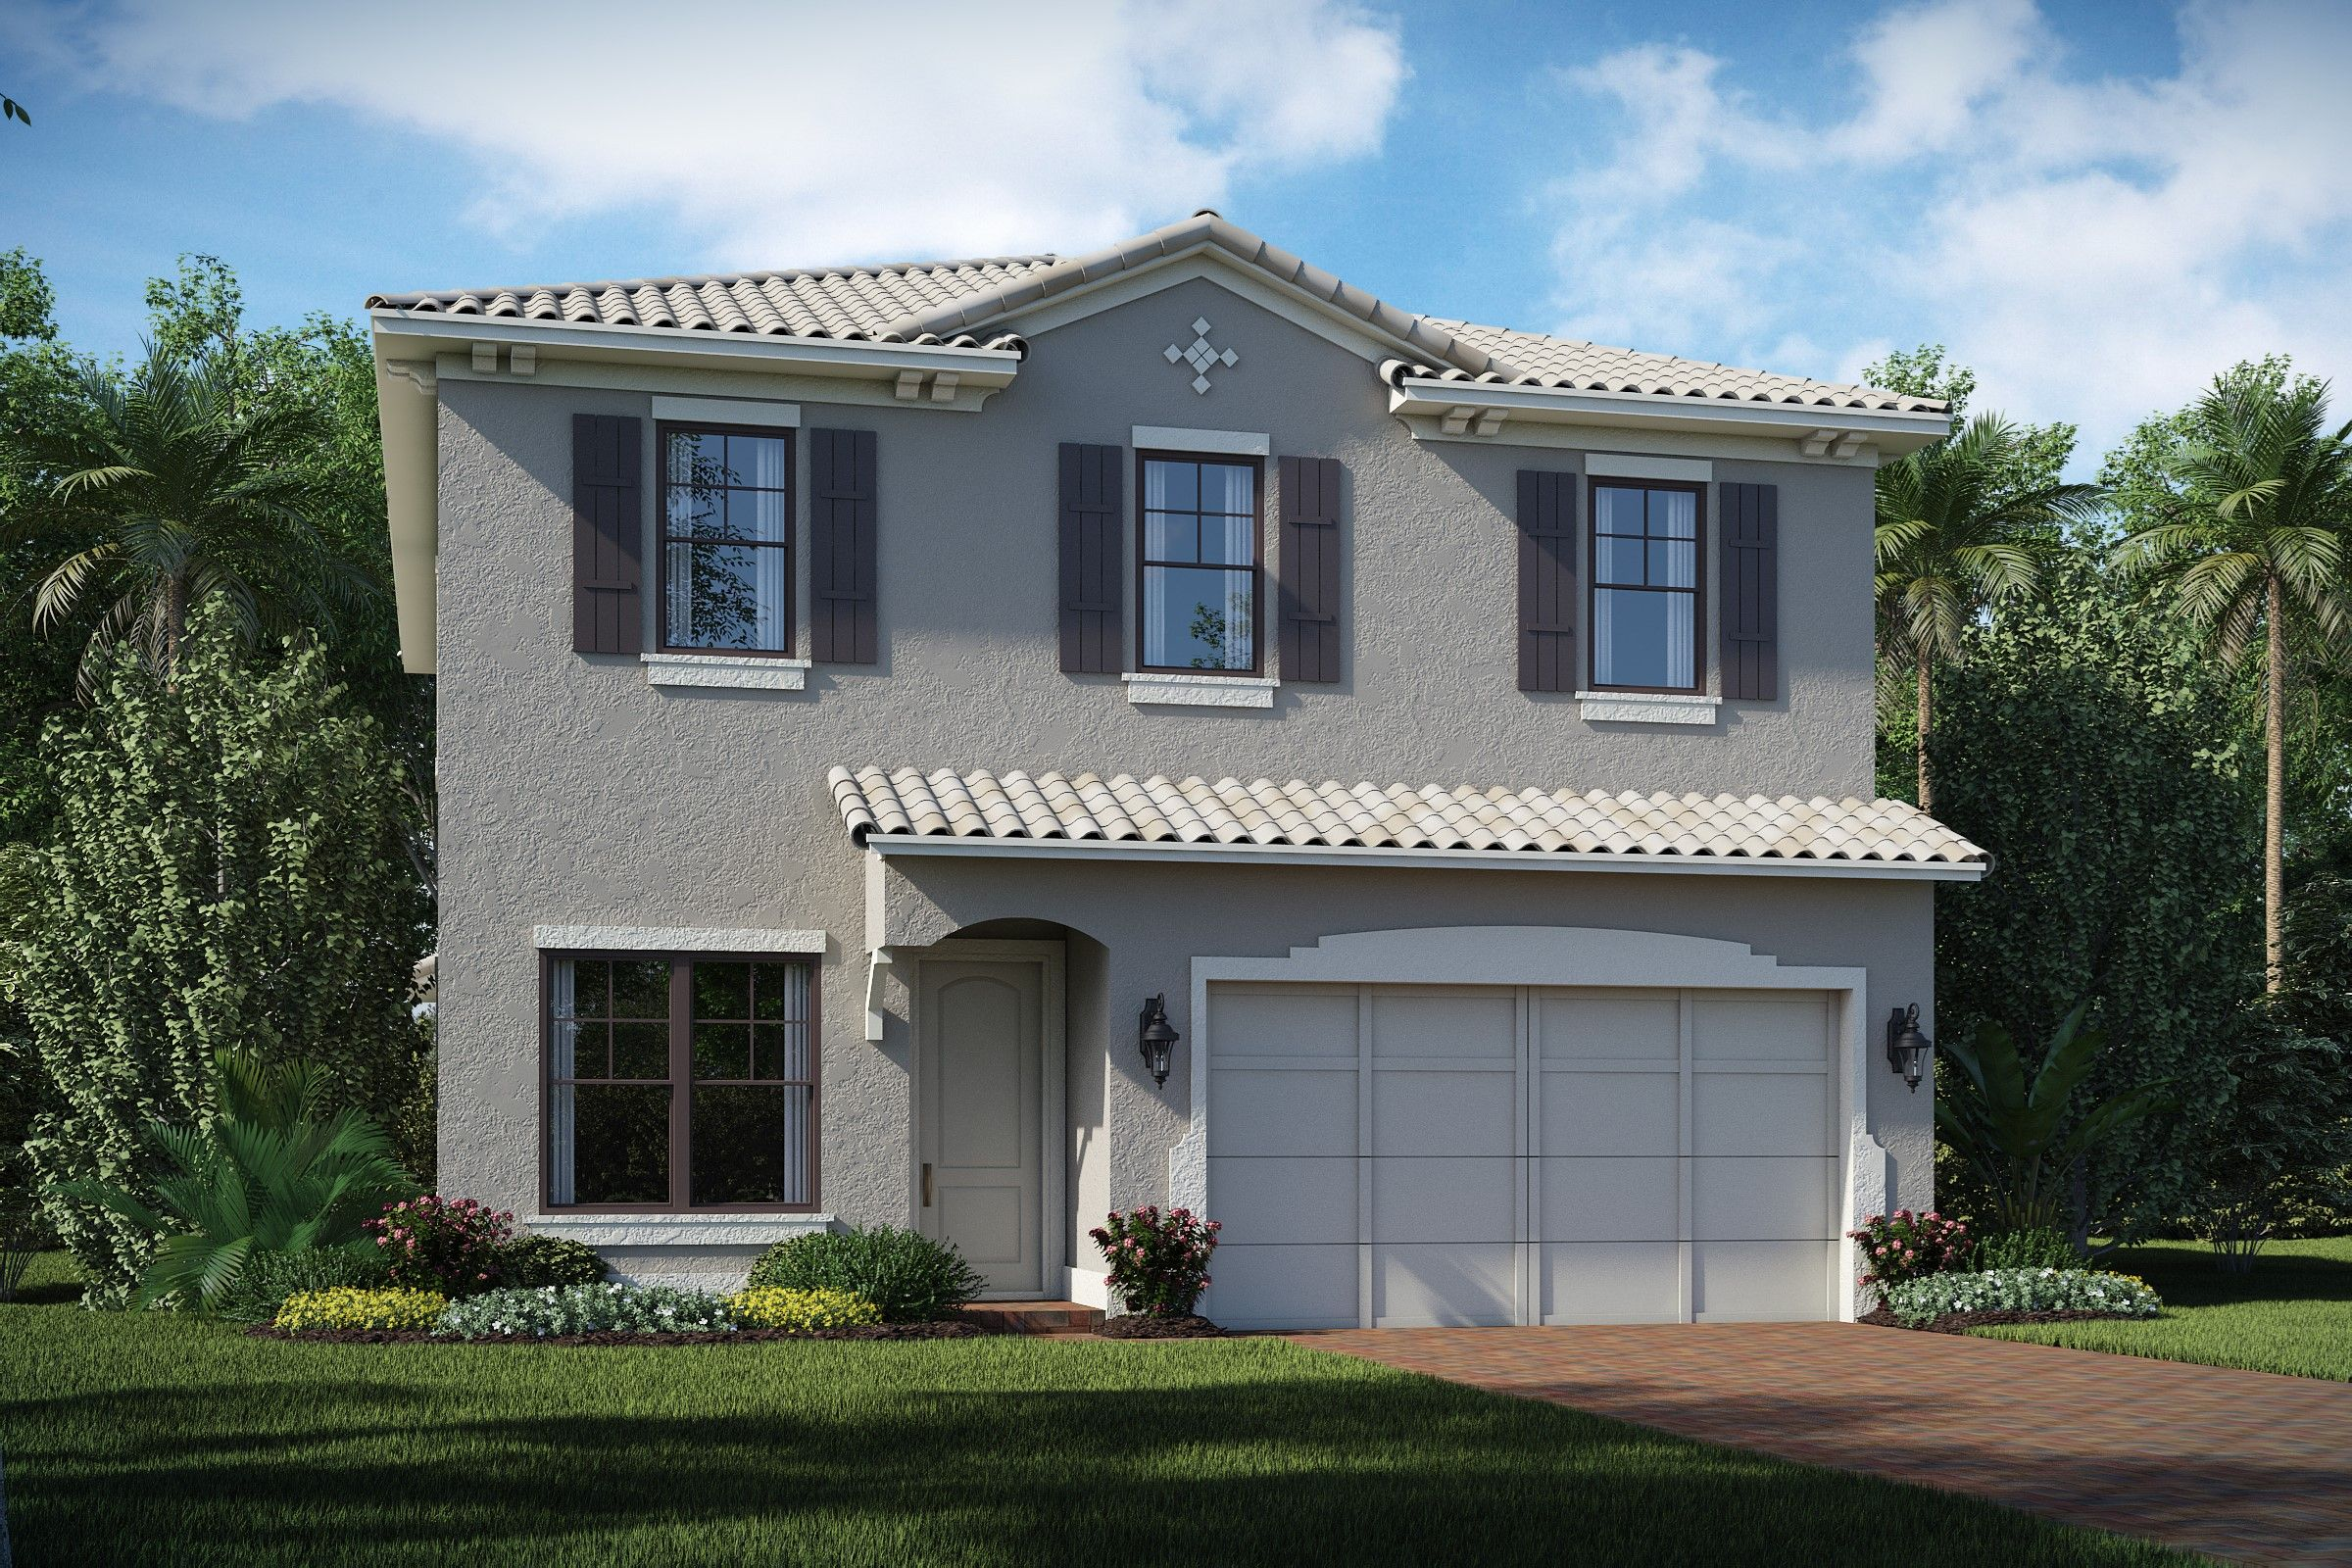 Single Family for Active at Coral Lago - Sinclaire University Drive And Nw 39th Street Coral Springs, Florida 33075 United States